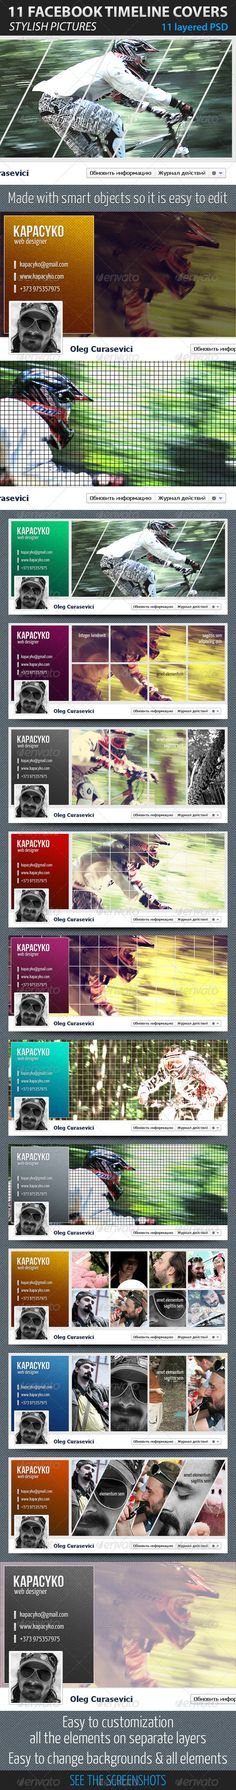 11 Facebook Timeline Covers - GraphicRiver